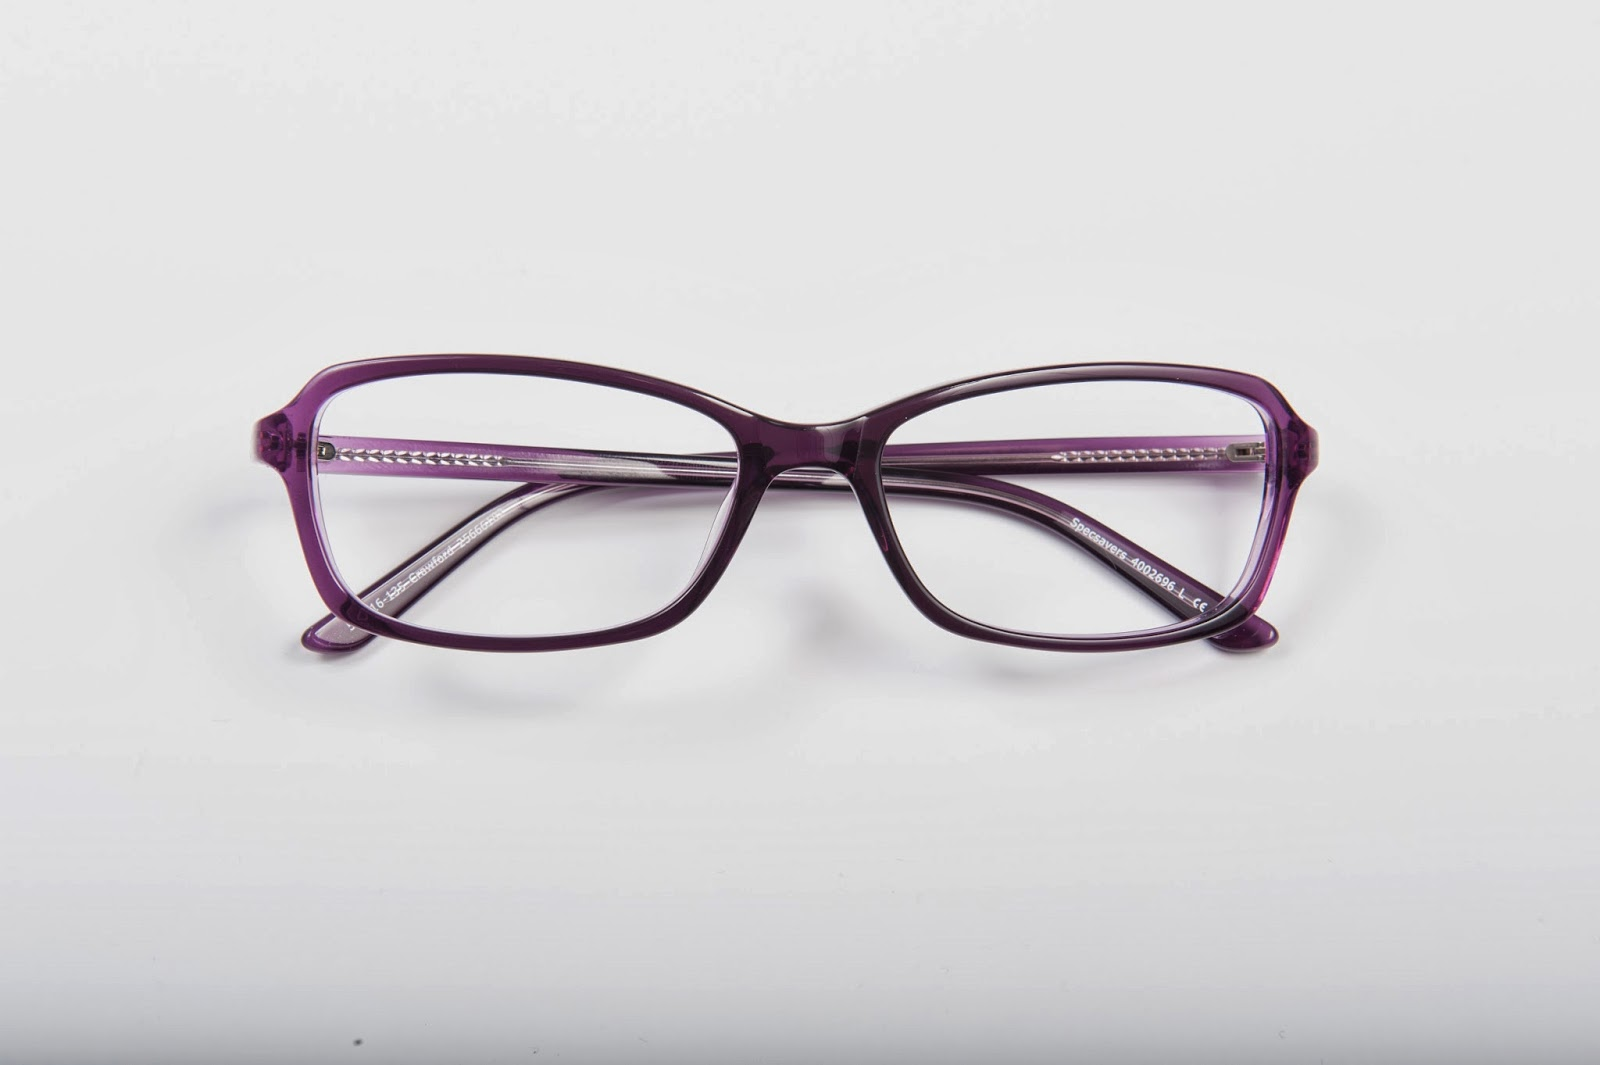 4414f91da4e5 Specsavers has got a rainbow of colours for its frames. The Crawford ones  with my favourite purple are £ 69.00 and they are part of the offer 2 for 1  so in ...